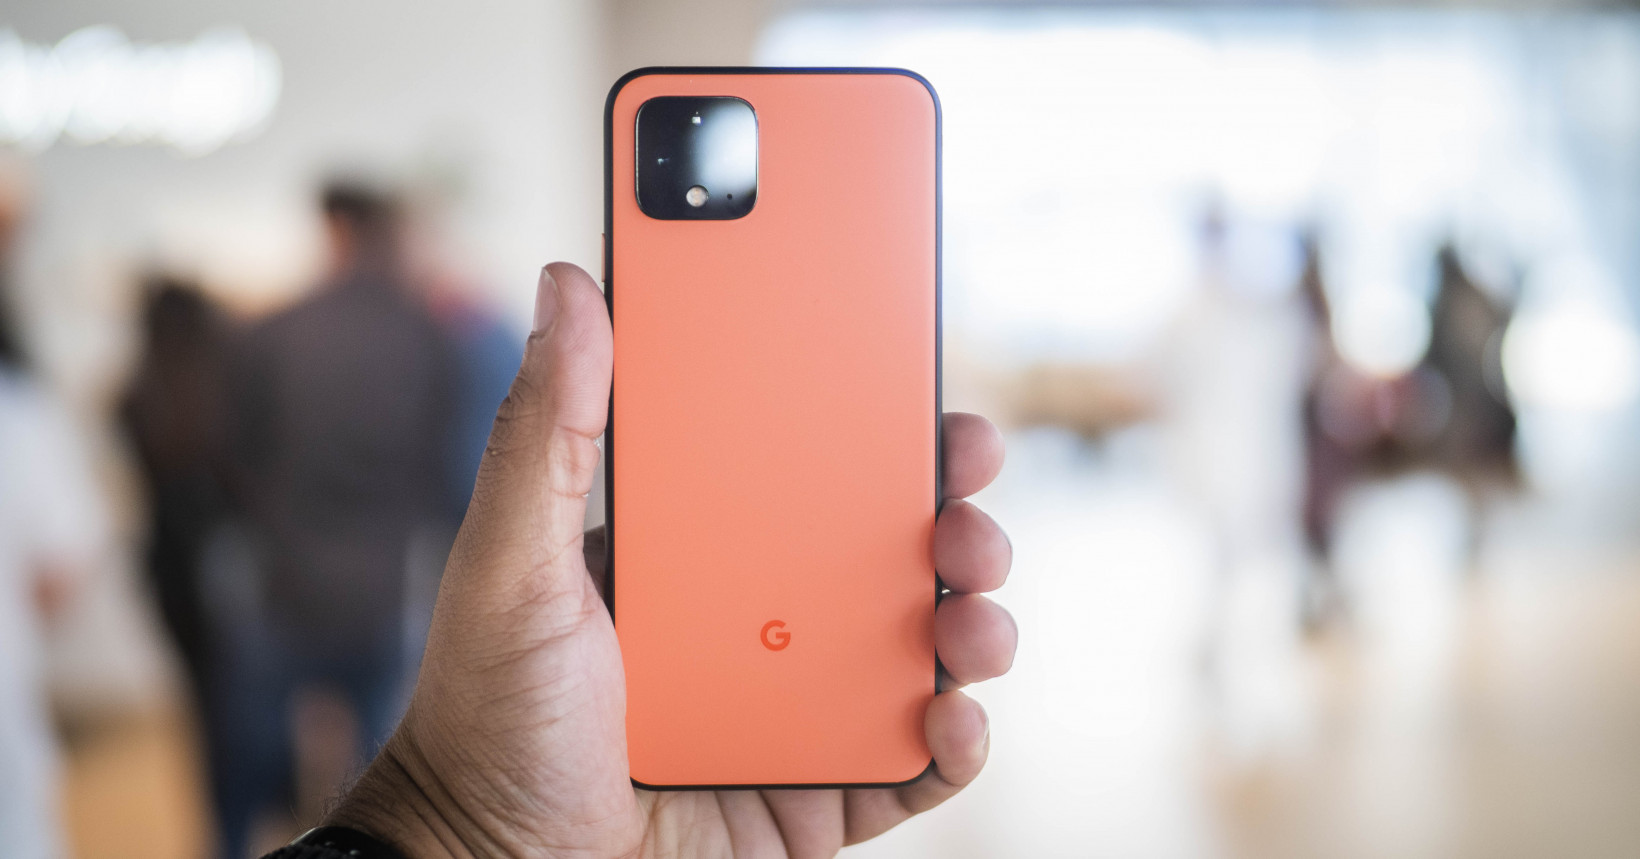 Pixel 4 hands-on: I almost wish I didn't like it this much